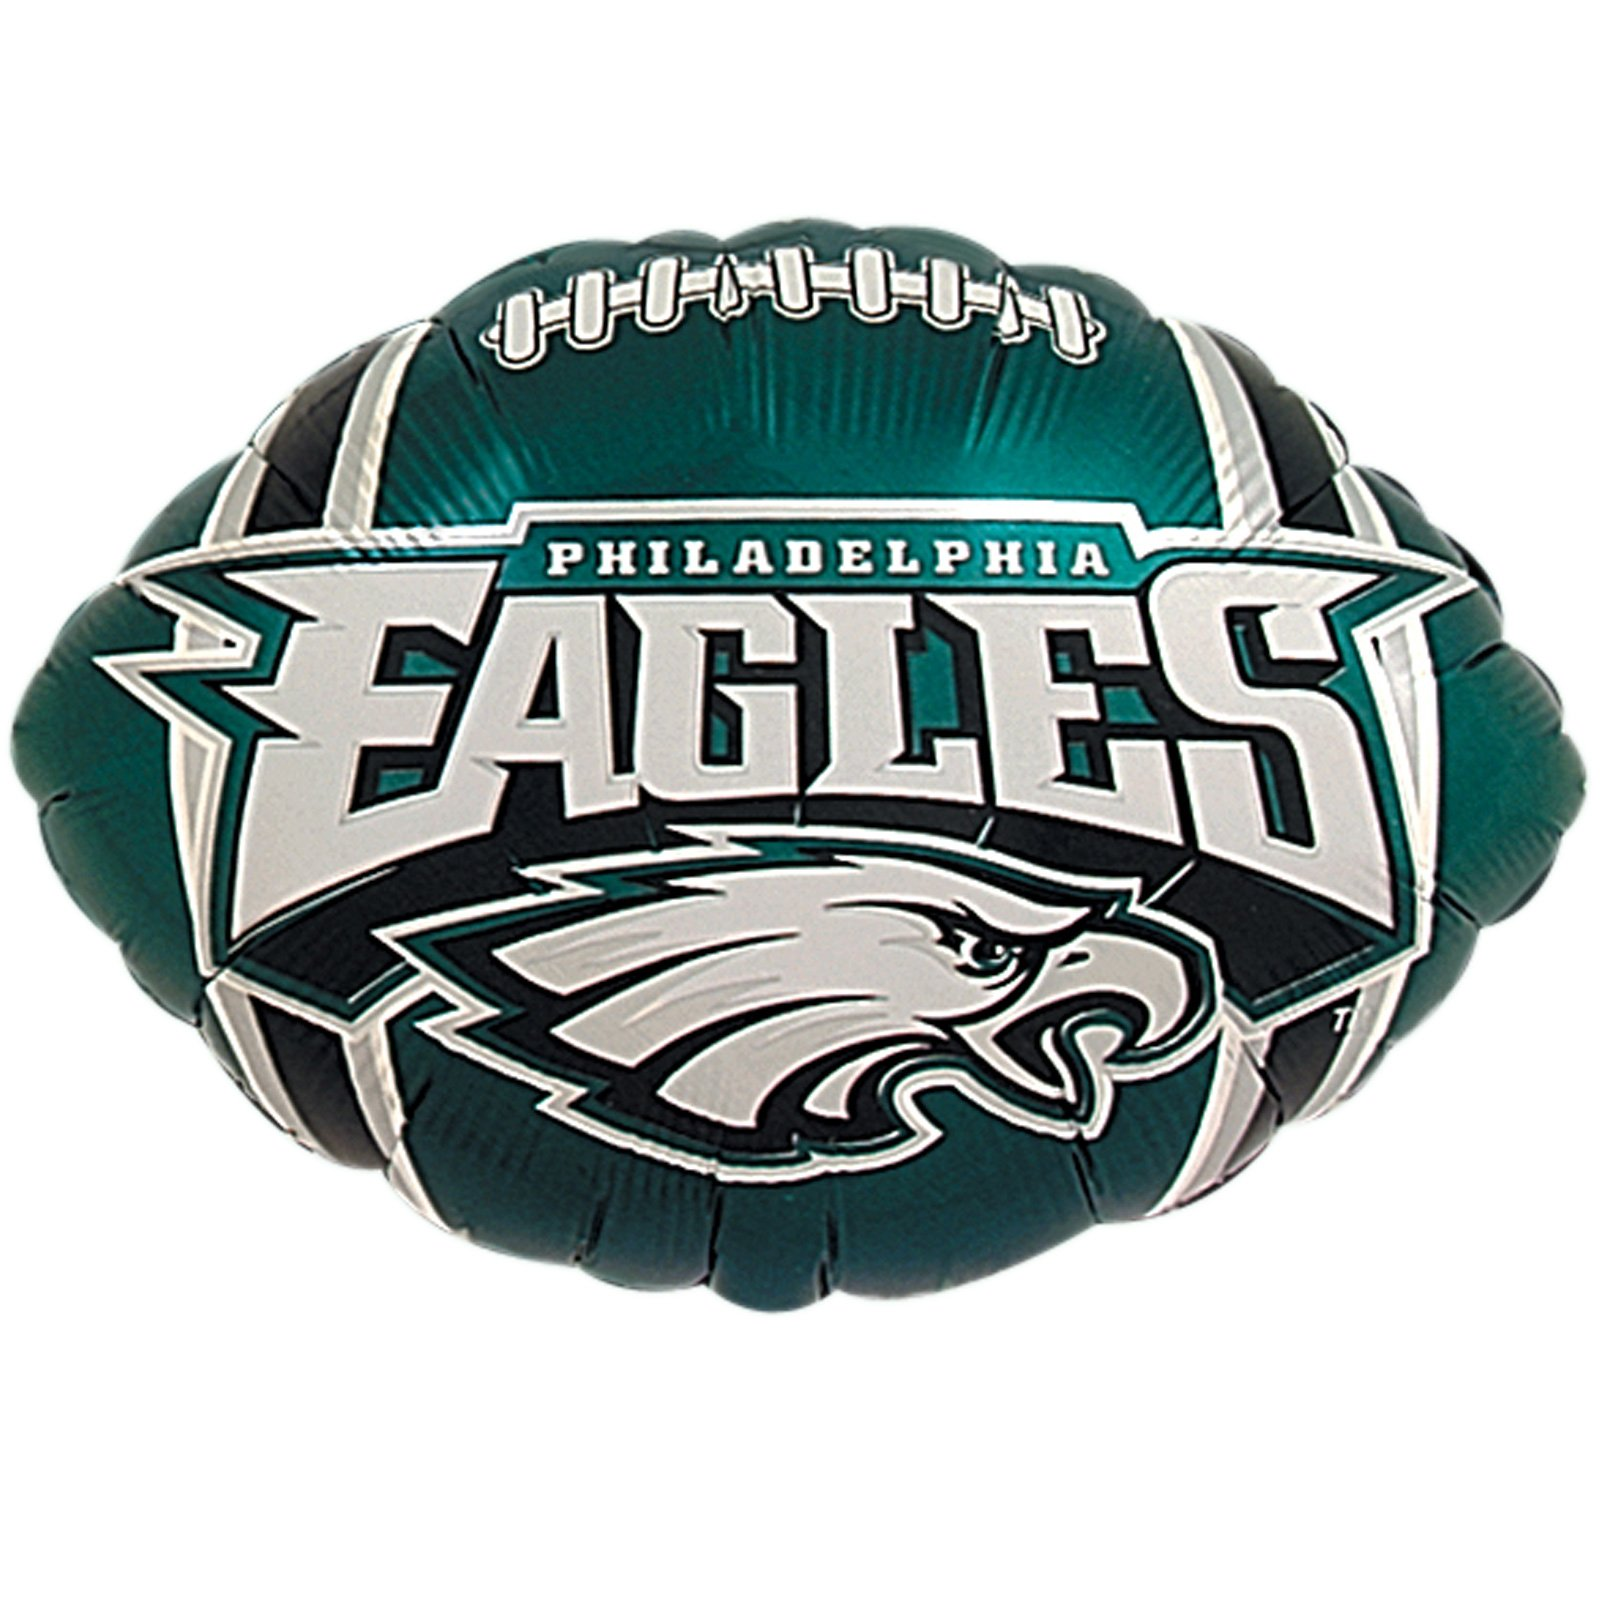 Free Football Eagle Cliparts, Download Free Clip Art, Free.